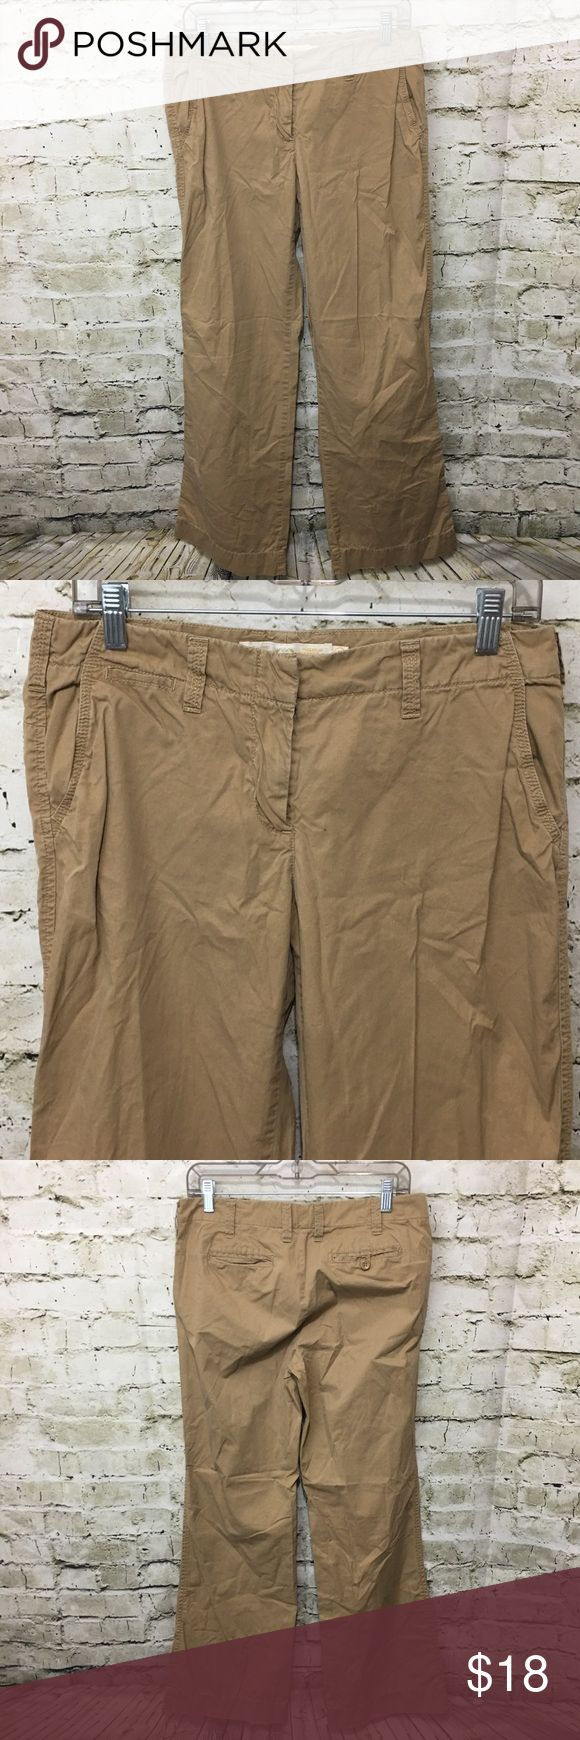 """J Crew City Fit Chino Khaki Pants J Crew Women's Broken in City Fit Chino Pants Size 6 Regular in good used condition with no flaws.  Measurements: Waist: 15.5"""" Rise: 9"""" Inseam: 31"""" J. Crew Pants Wide Leg"""